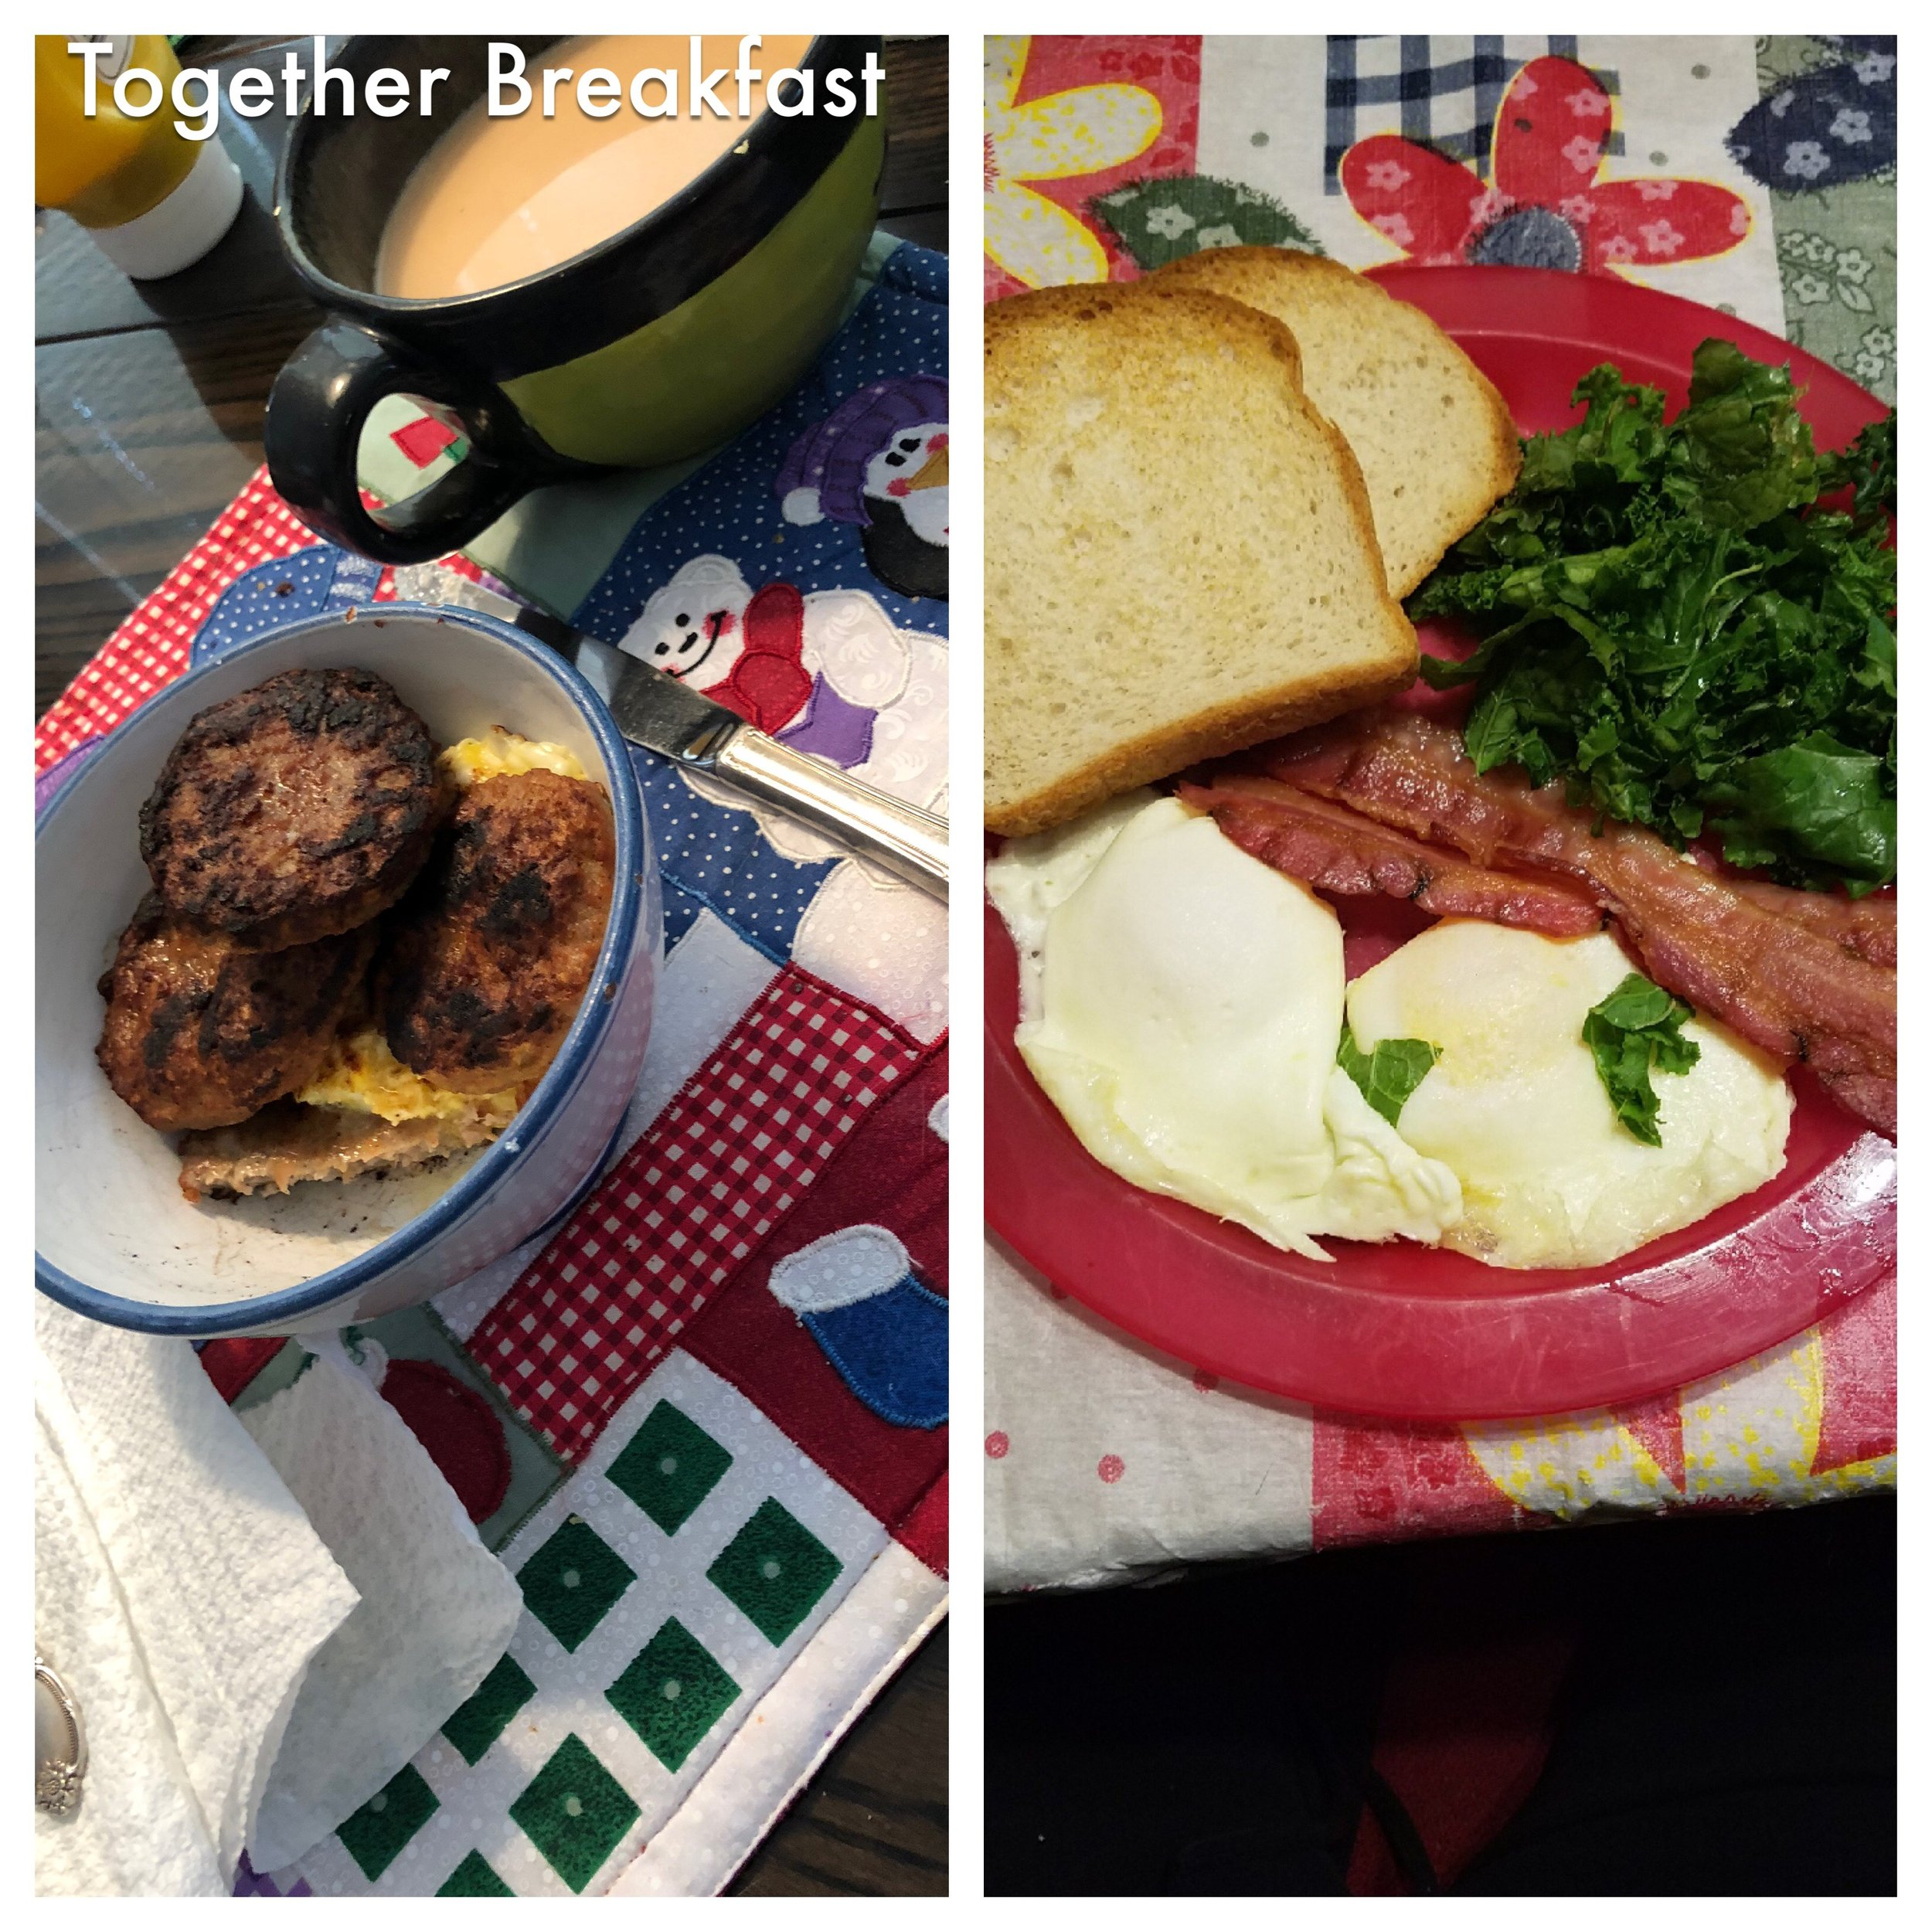 My breakfast is on the left.